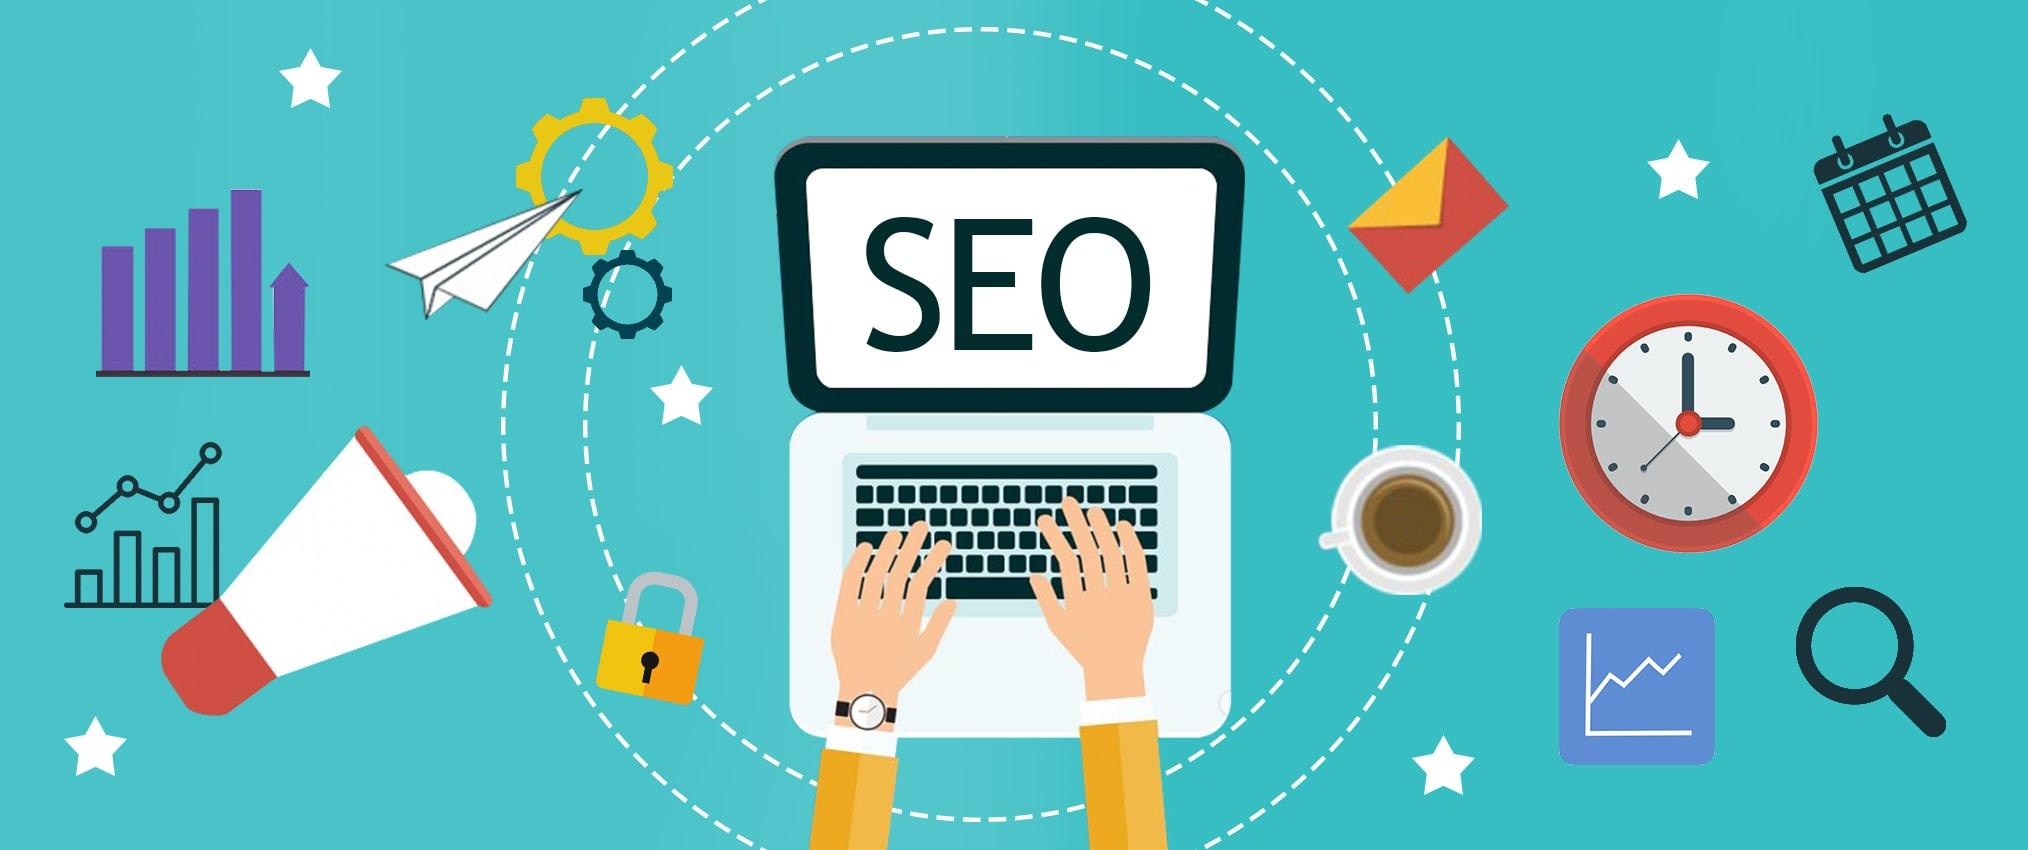 Things to consider while outsourcing SEO services